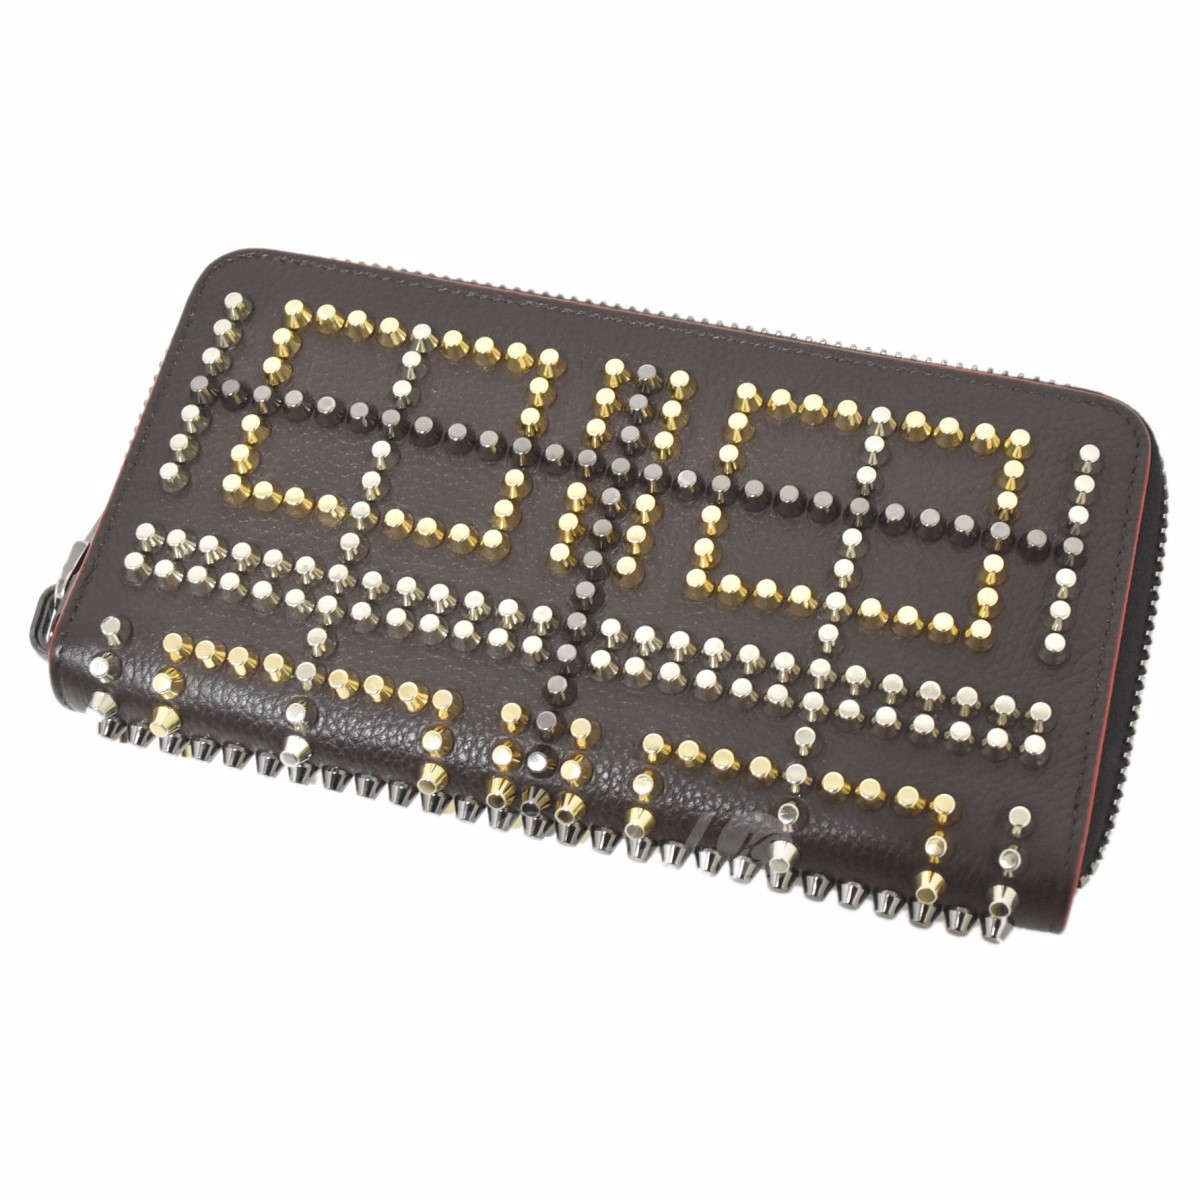 【中古】CHRISTIAN LOUBOUTIN M PANETTONE WALLET CALF EMPIRE SPIKES 【送料無料】 【001523】 【KIND1551】